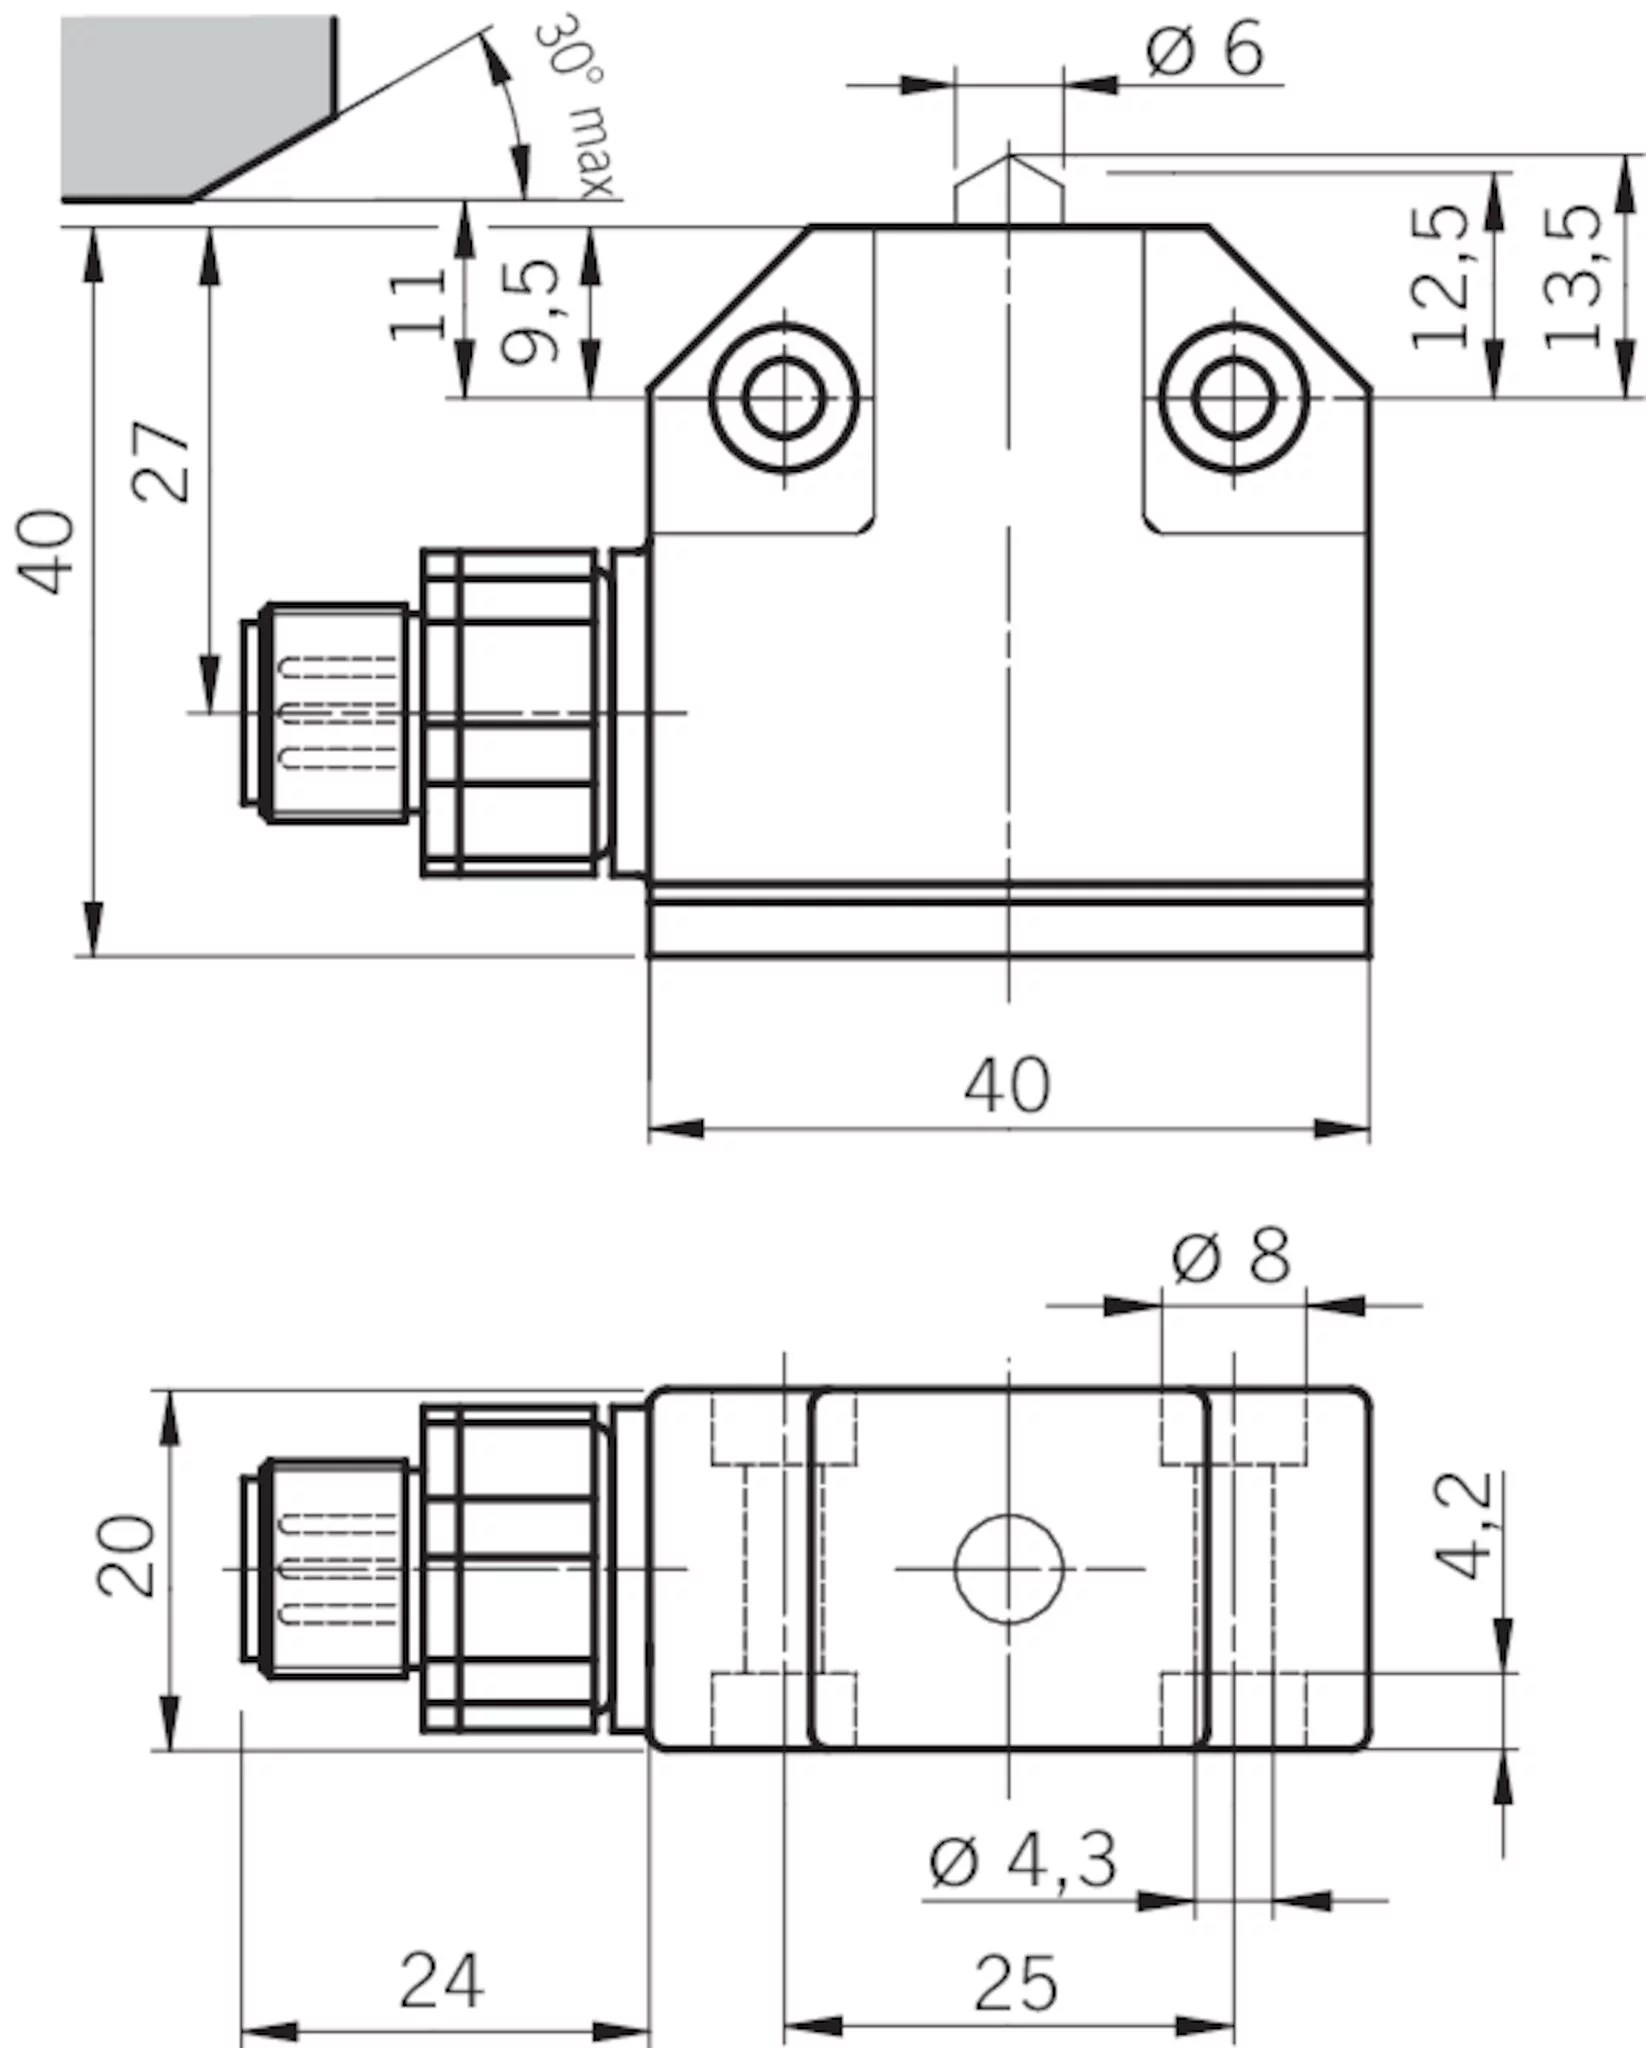 M12 Connector Wiring Diagram